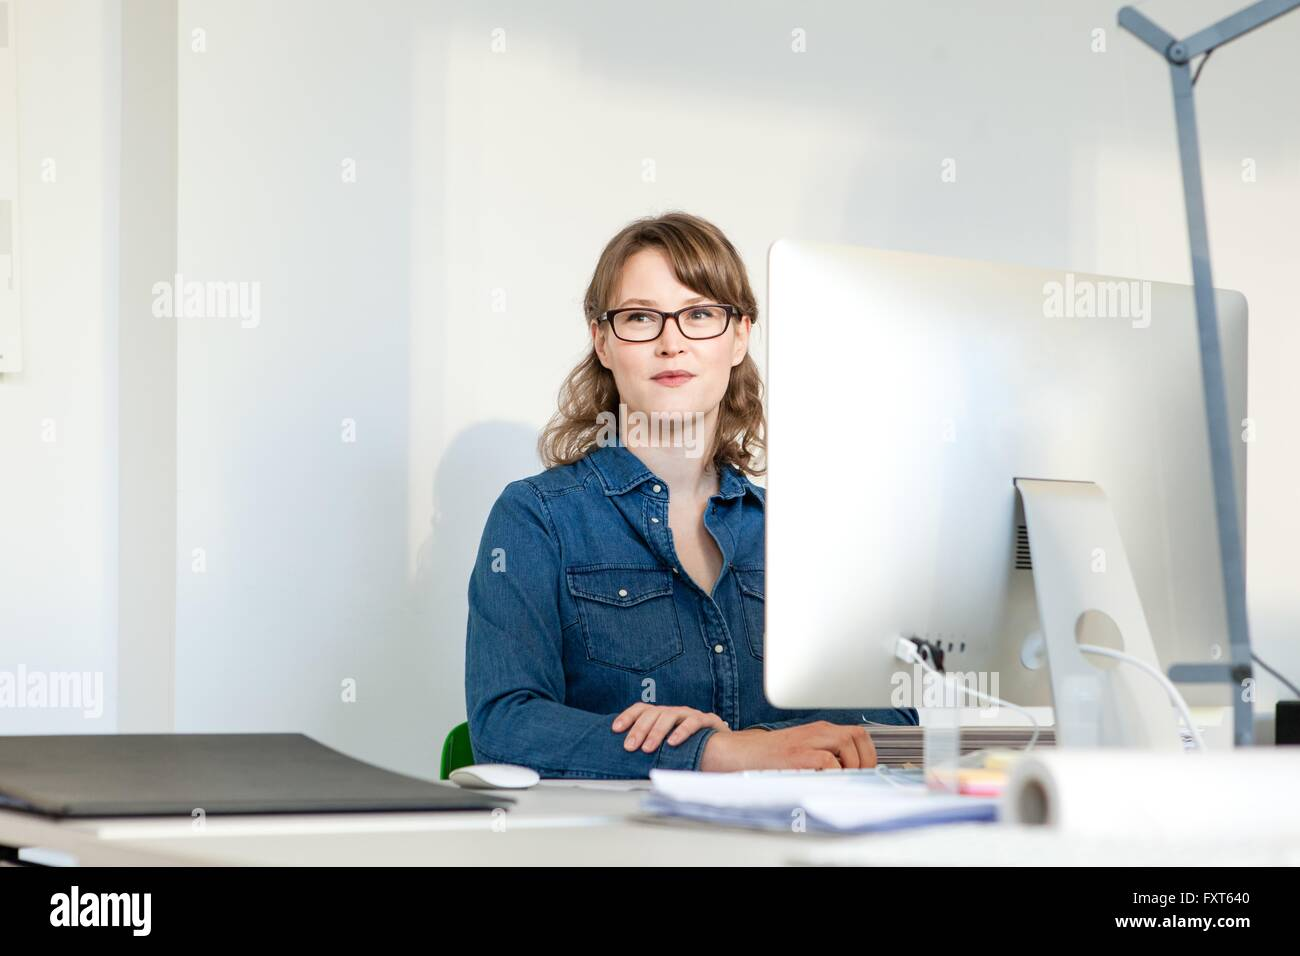 Young woman wearing eyeglasses sitting at desk using computer sitting smiling Photo Stock